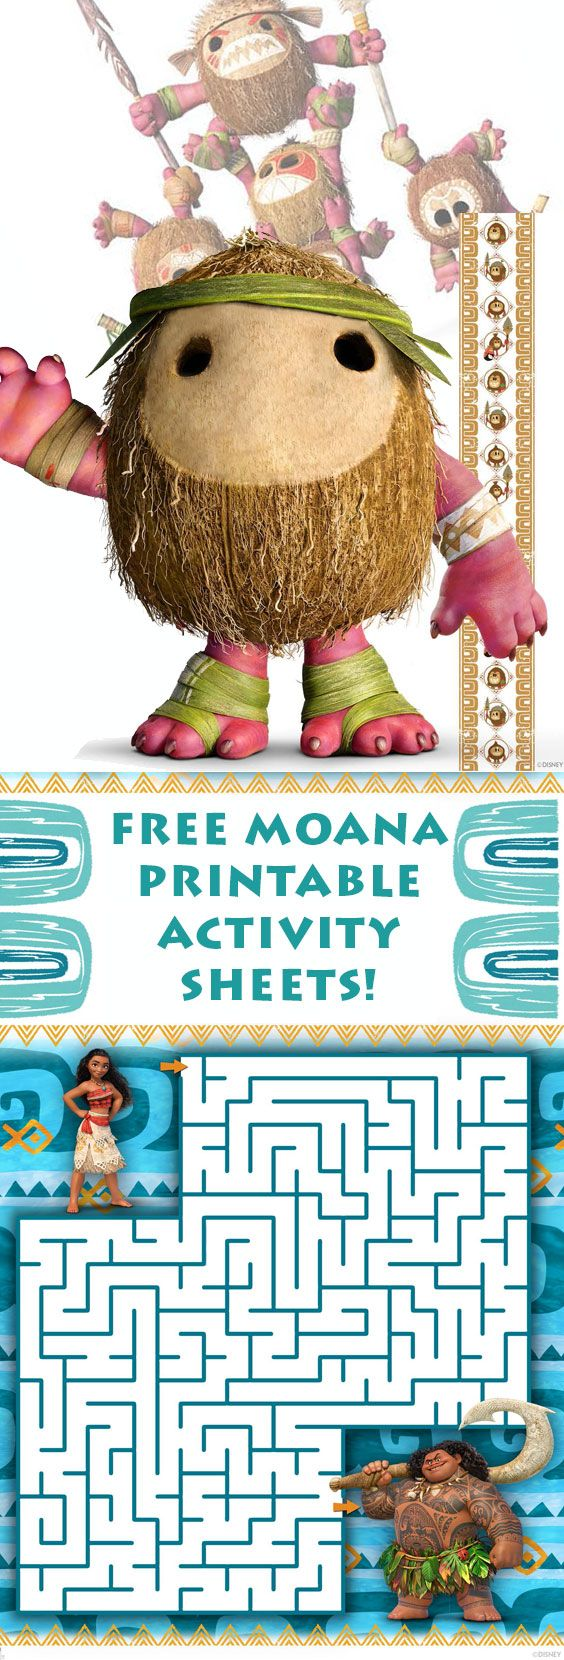 free moana printable activity sheets!